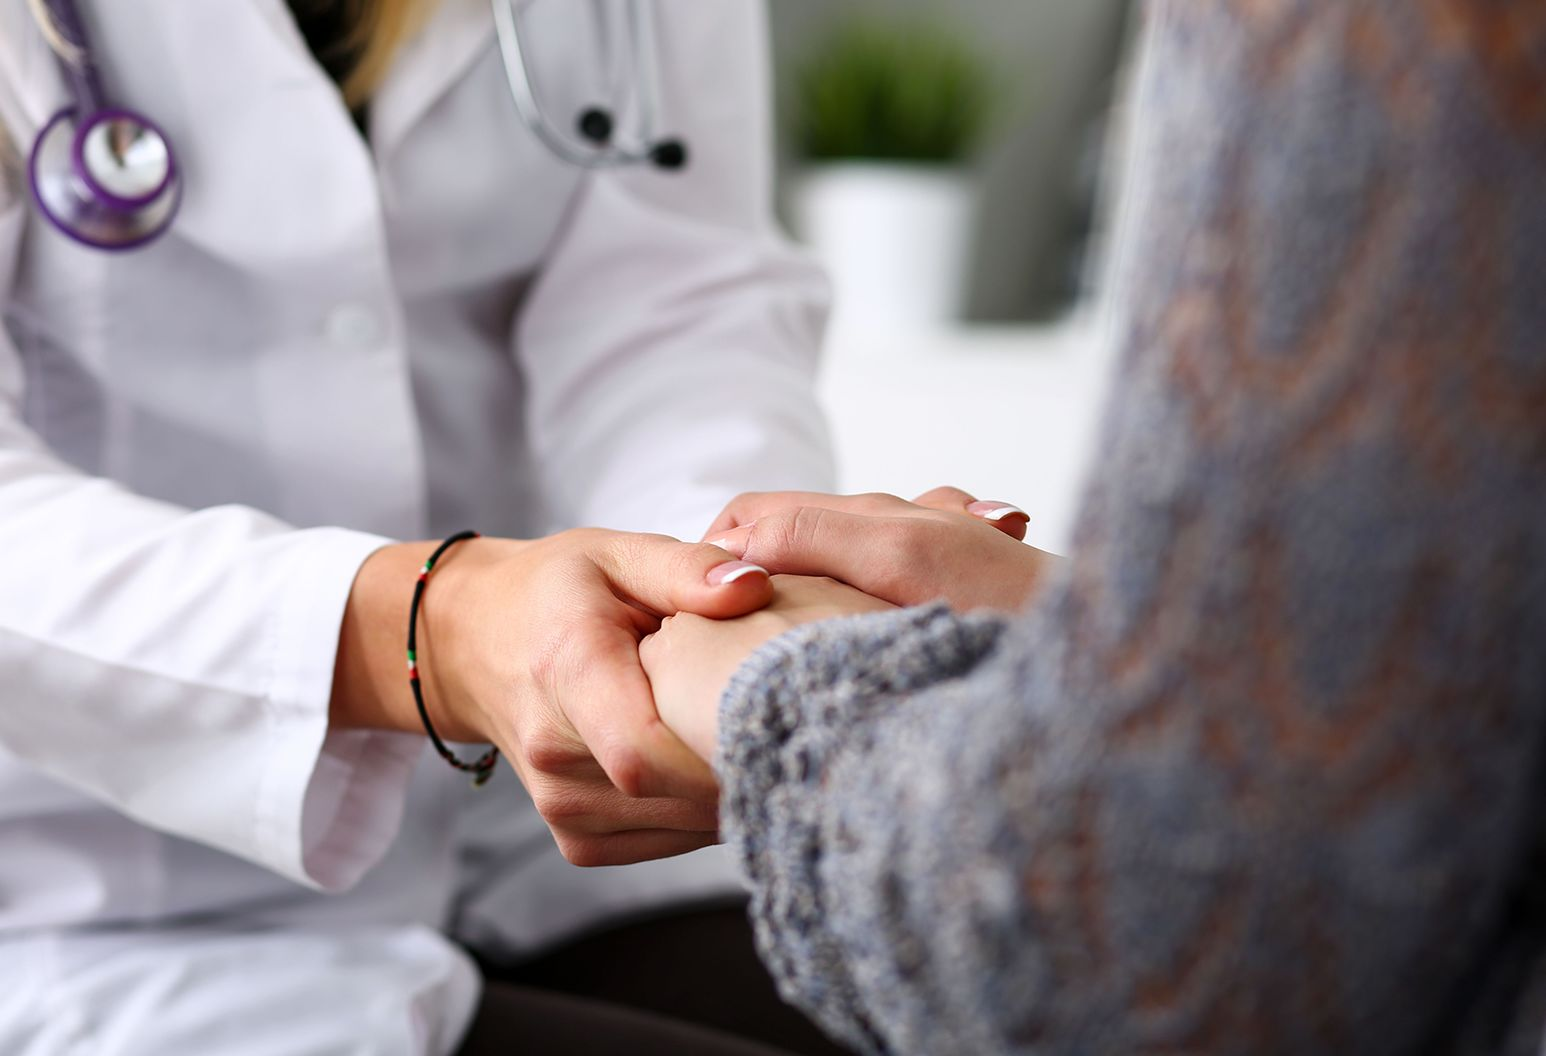 The hands of a woman wearing a white doctors coat is giving a comforting embrace to the hands of another person in a grey sweater.